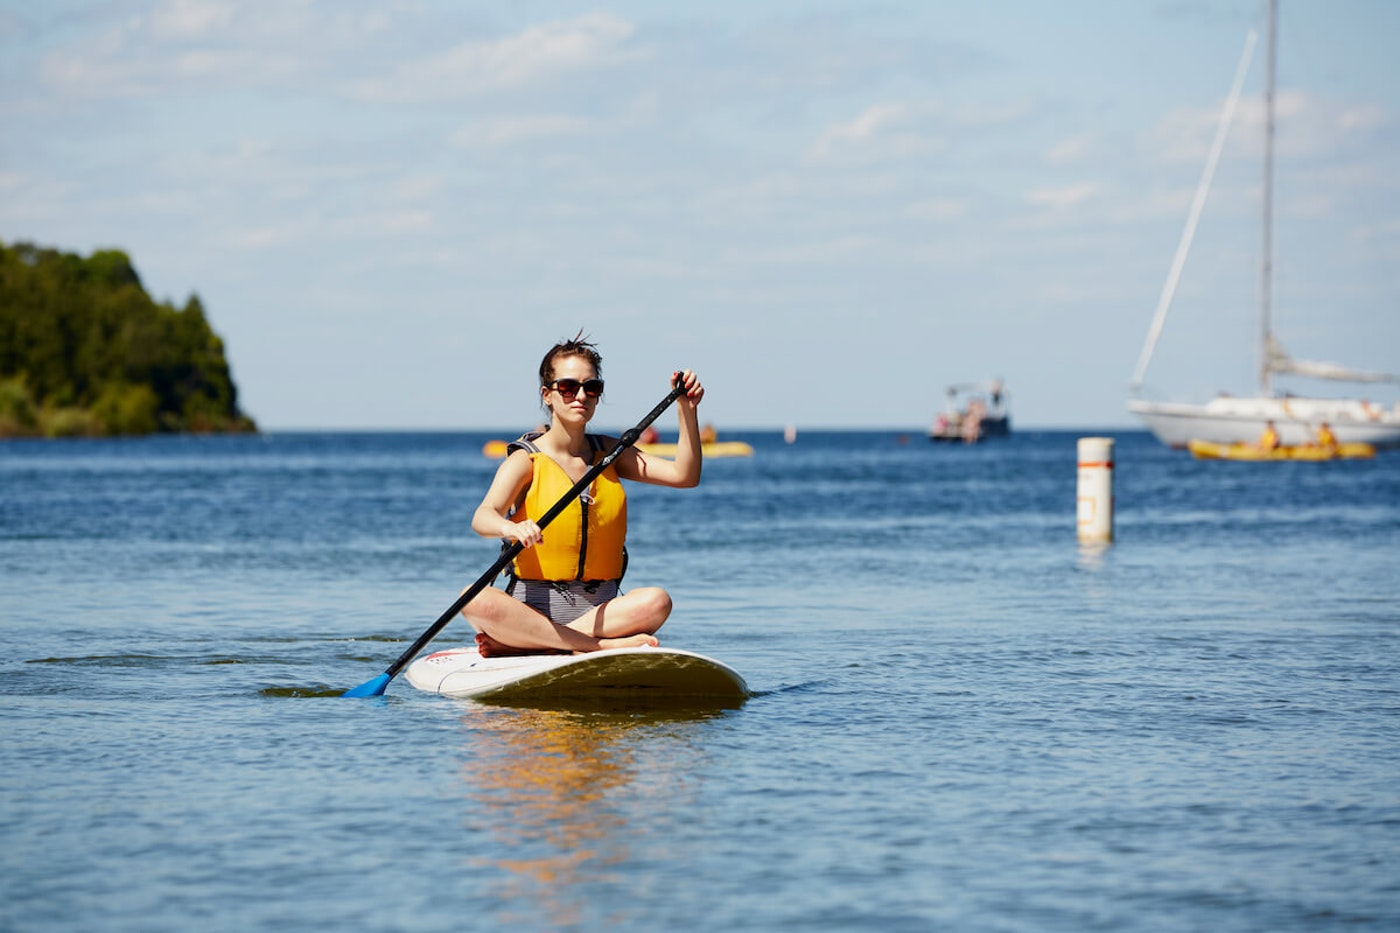 A woman paddle boards in Peninsula State Park in Door County. The county's tourism bureau expects a busy Memorial Day weekend as people begin to travel again after a year of staying put during the pandemic. (Photo courtesy of John Nienhuis/Destination Door County)